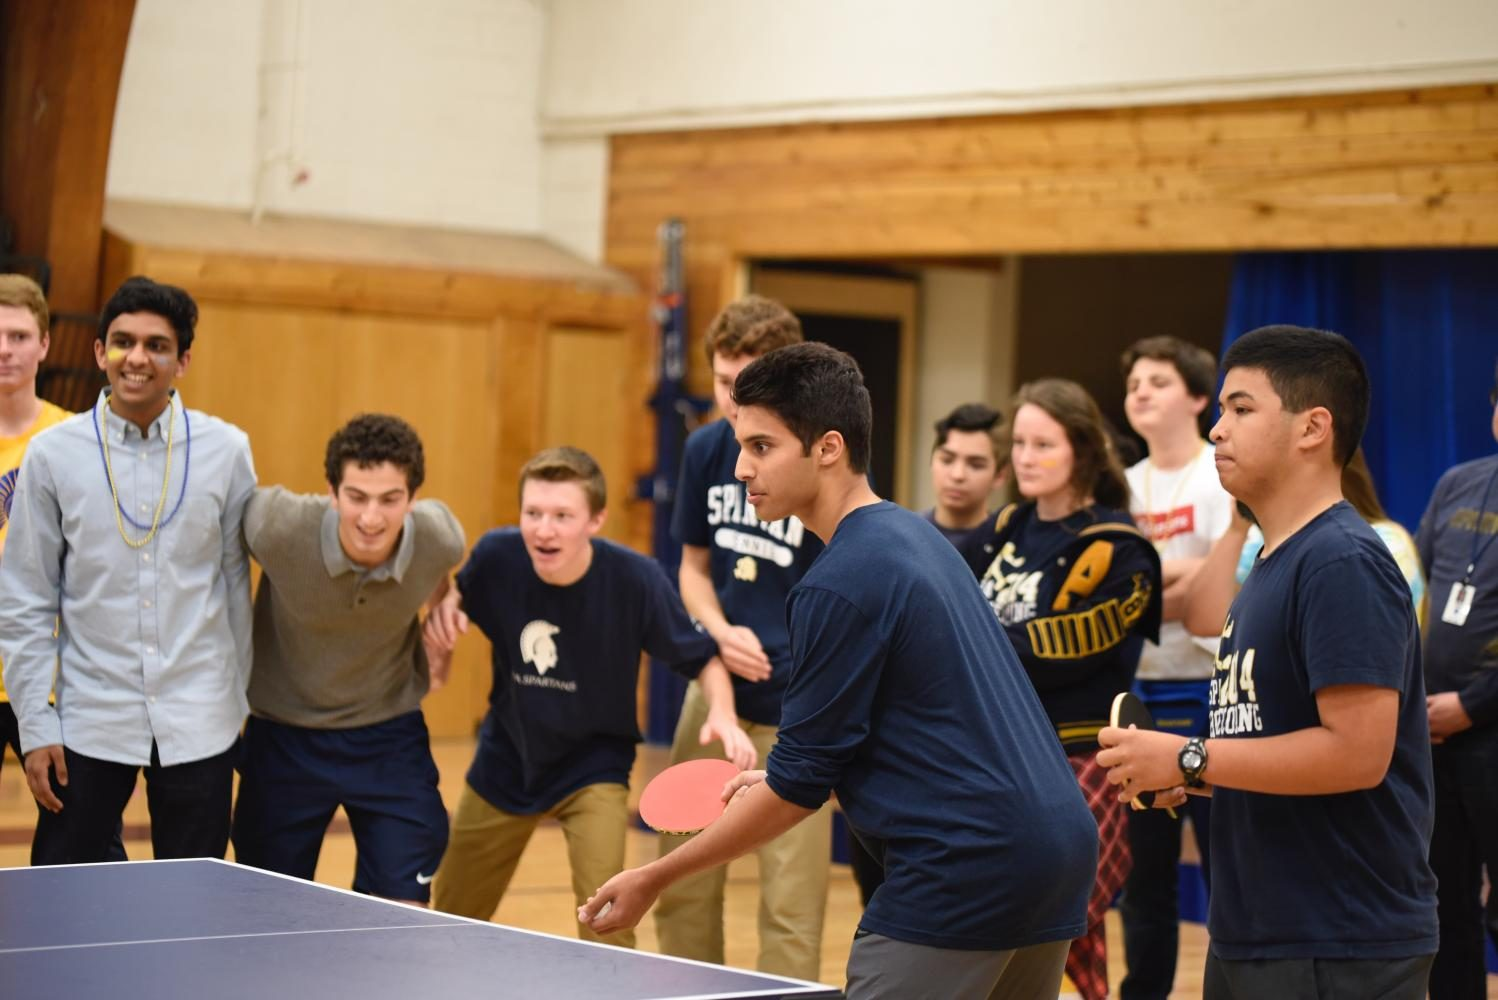 Junior Husaam Qureishy serves the ping pong in the championship game.